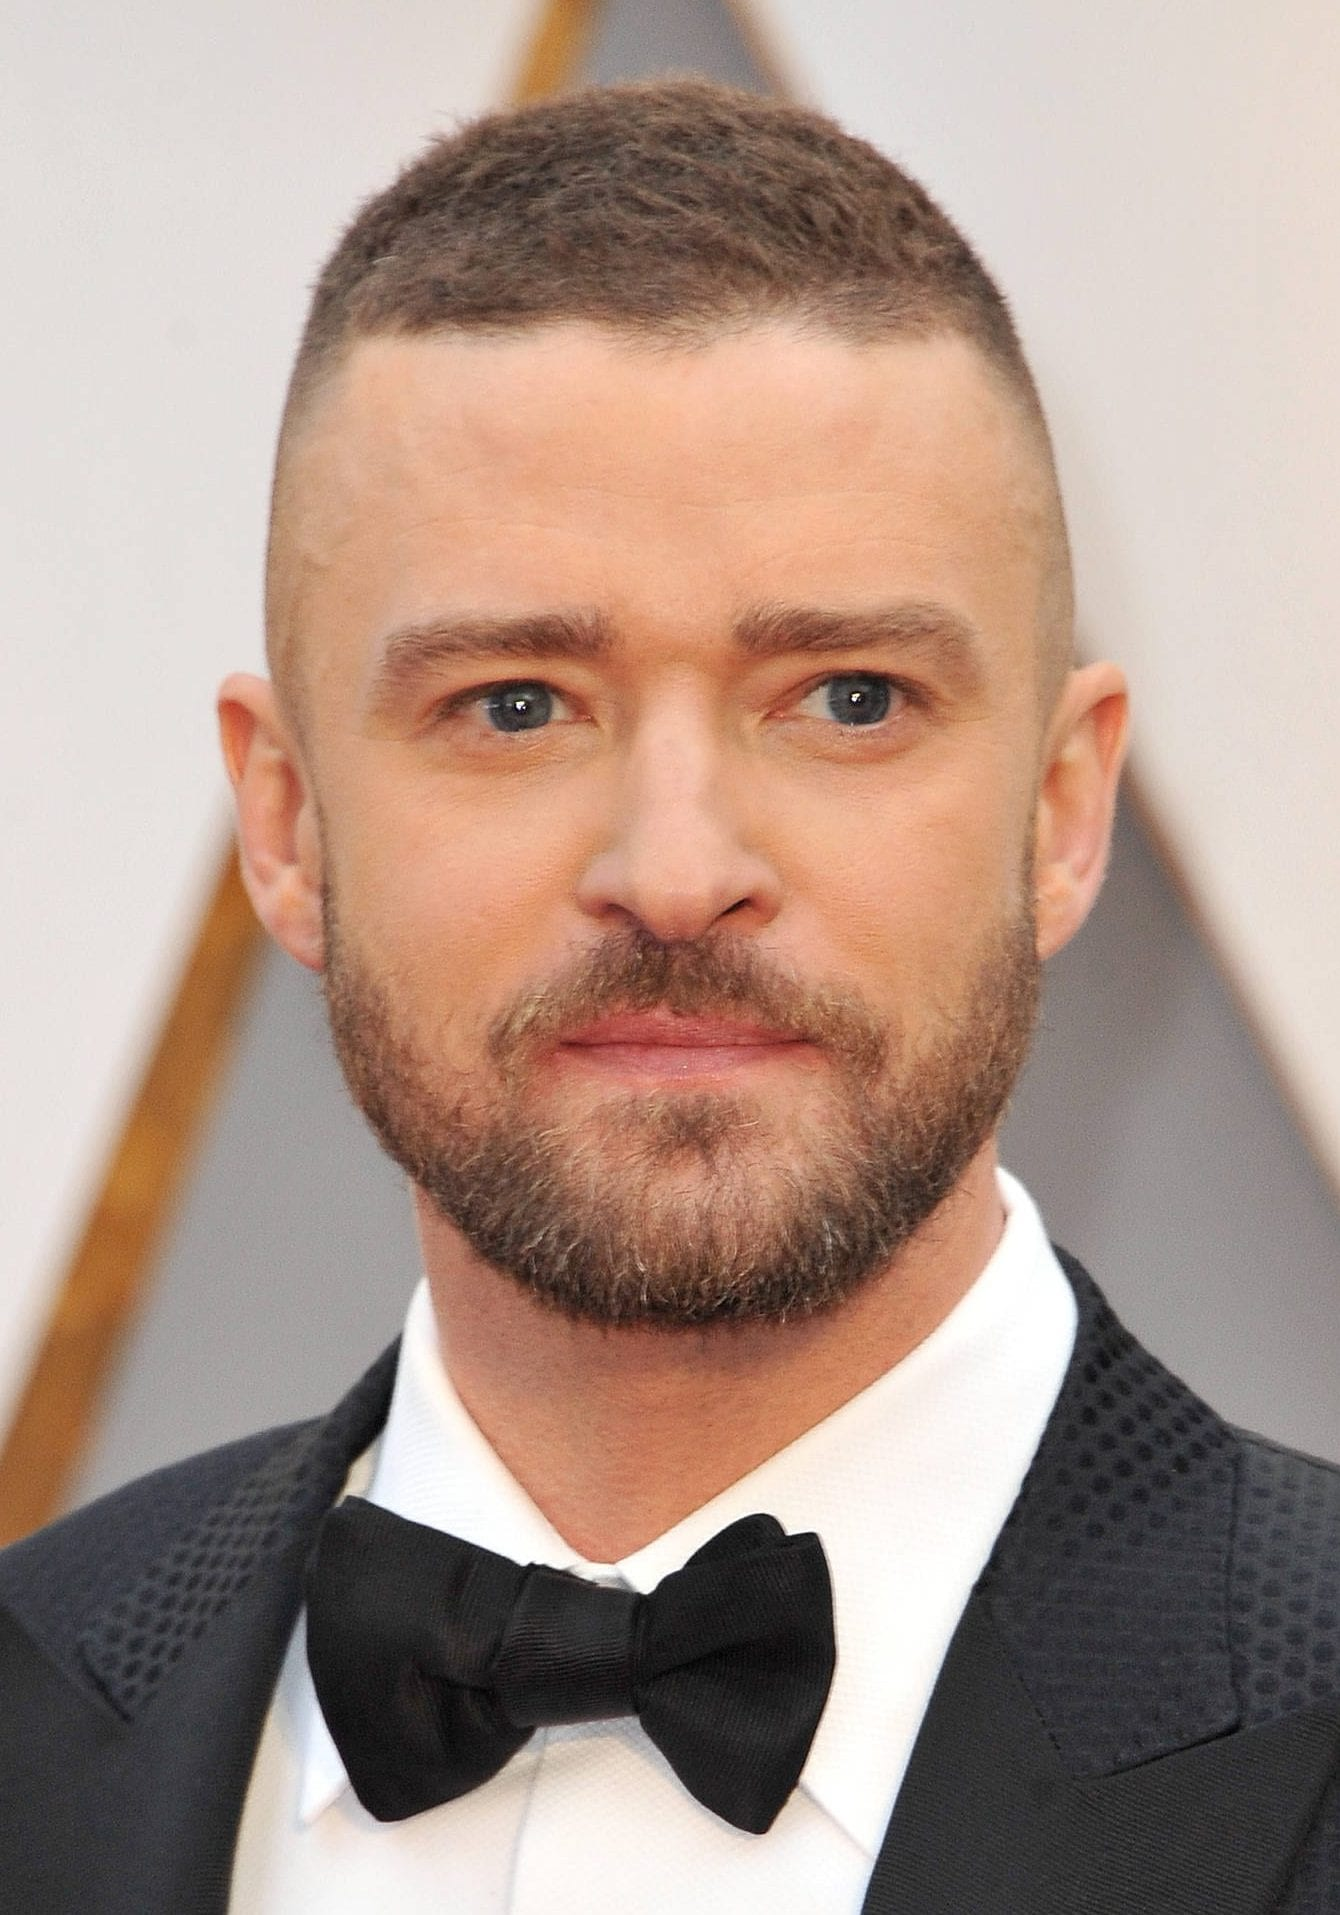 Justin Timberlake tall buzz cut